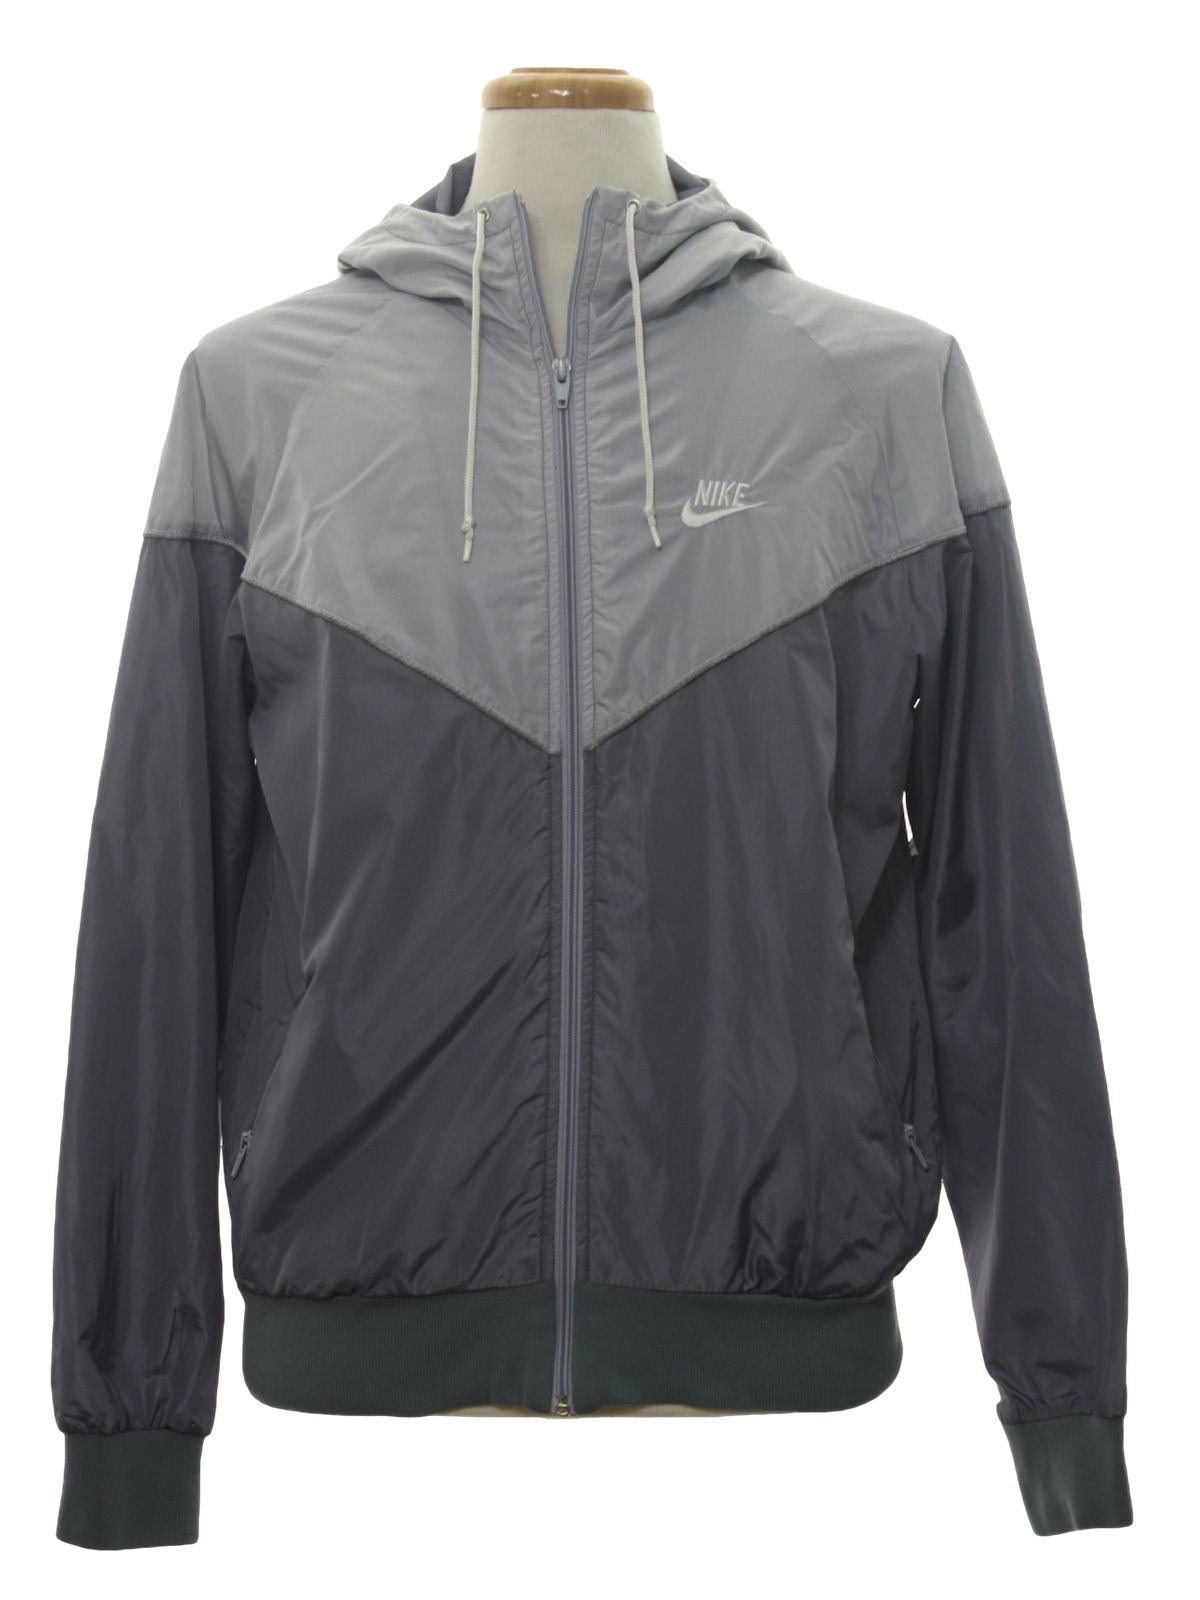 400291db7475 Vintage 1990 s Jacket  Early 90s -Nike- Mens light and dark grey ...